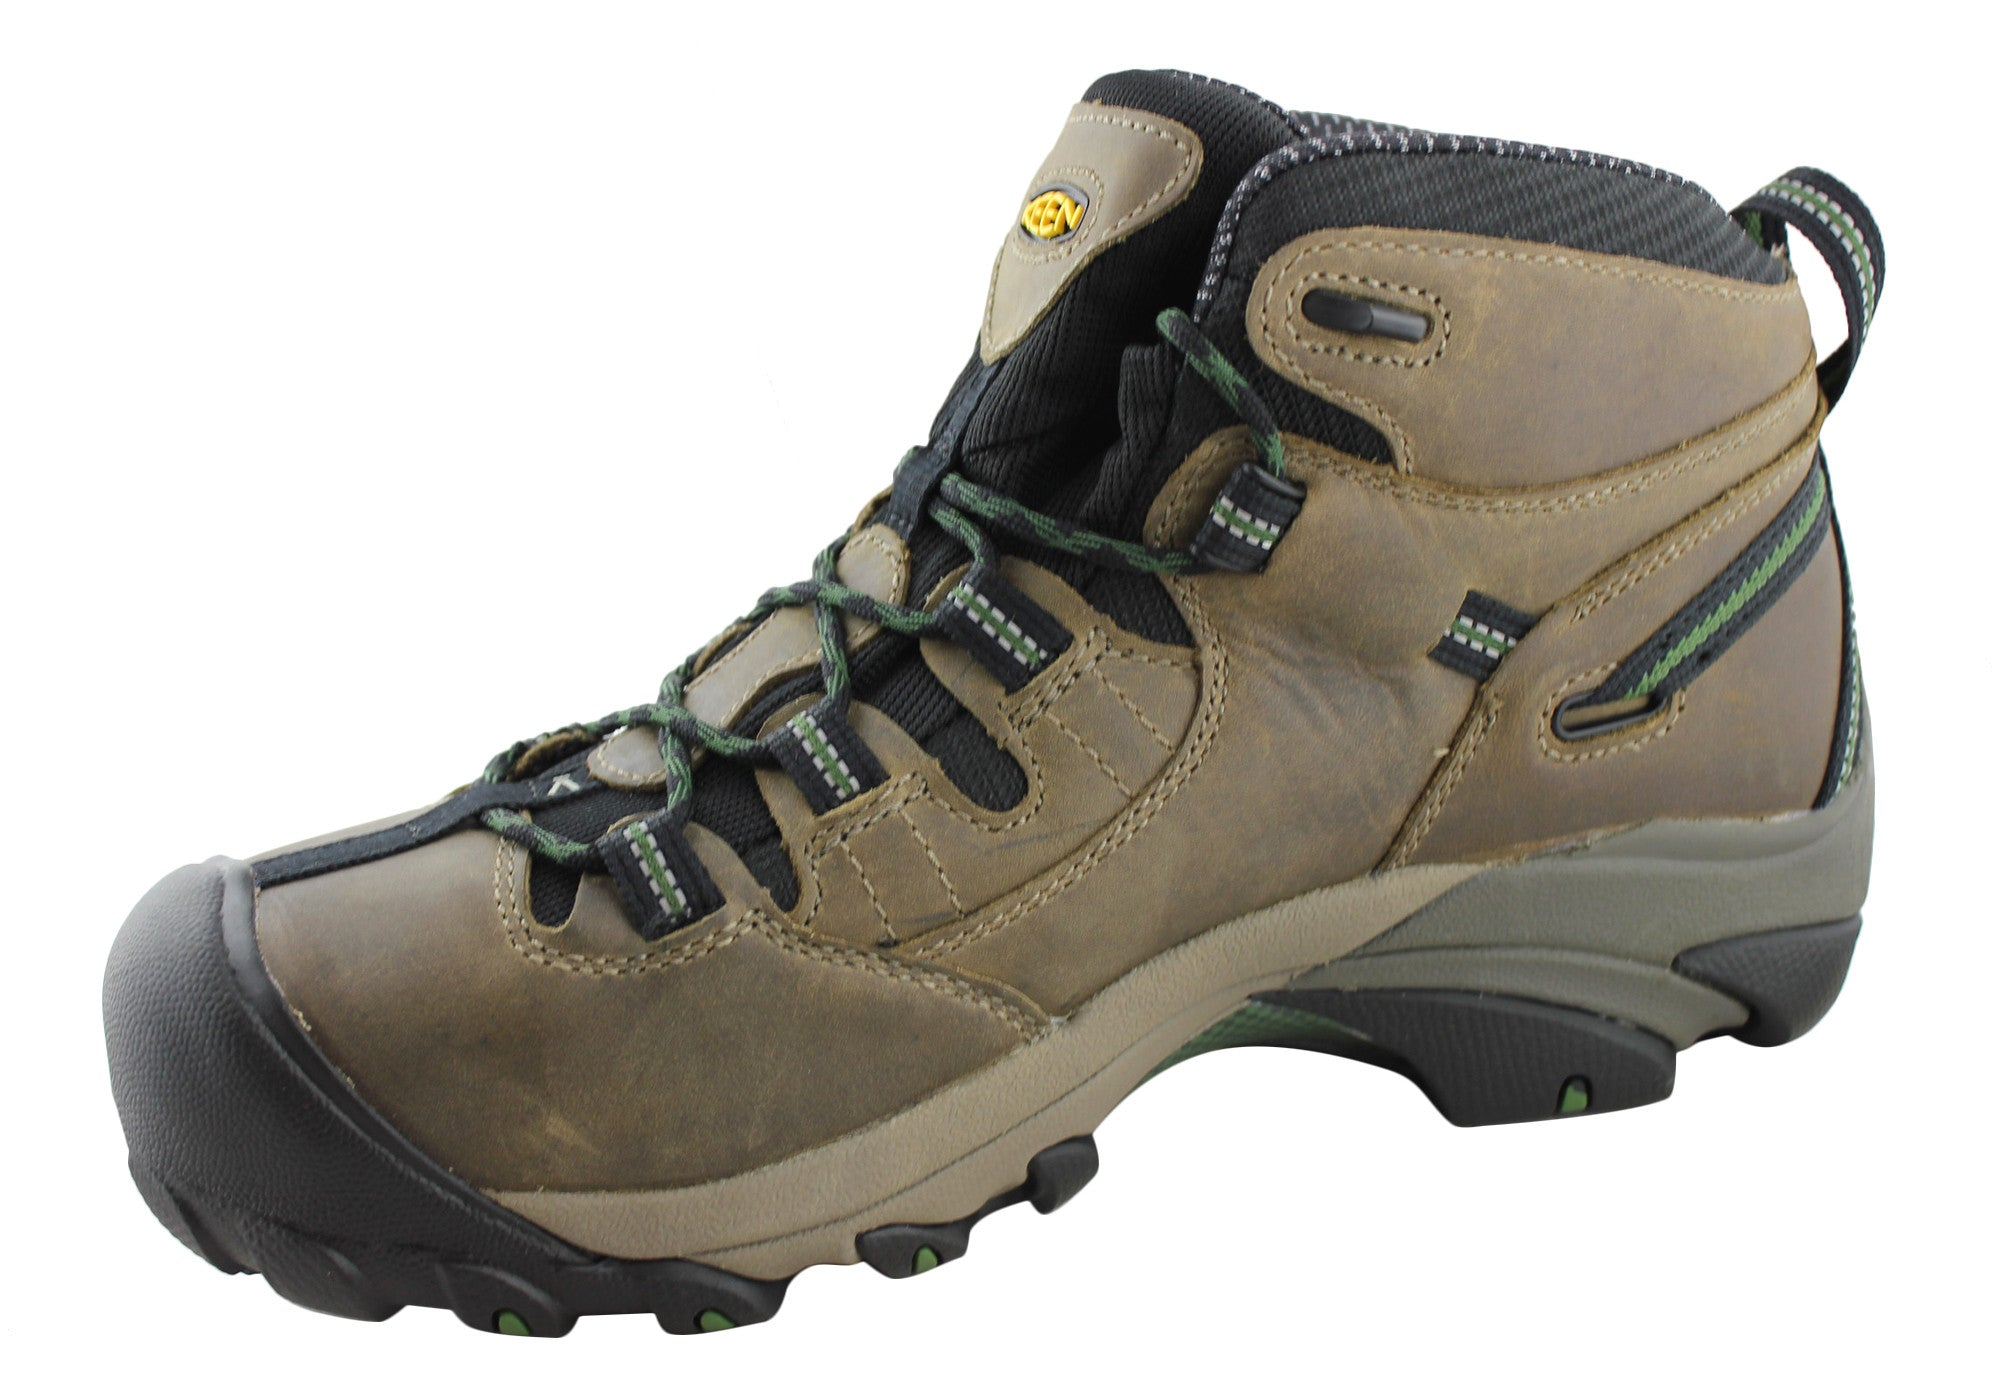 96c601f9e2e Keen Detroit Mid Mens Steel Toe Lace Up Wide Fit Boots